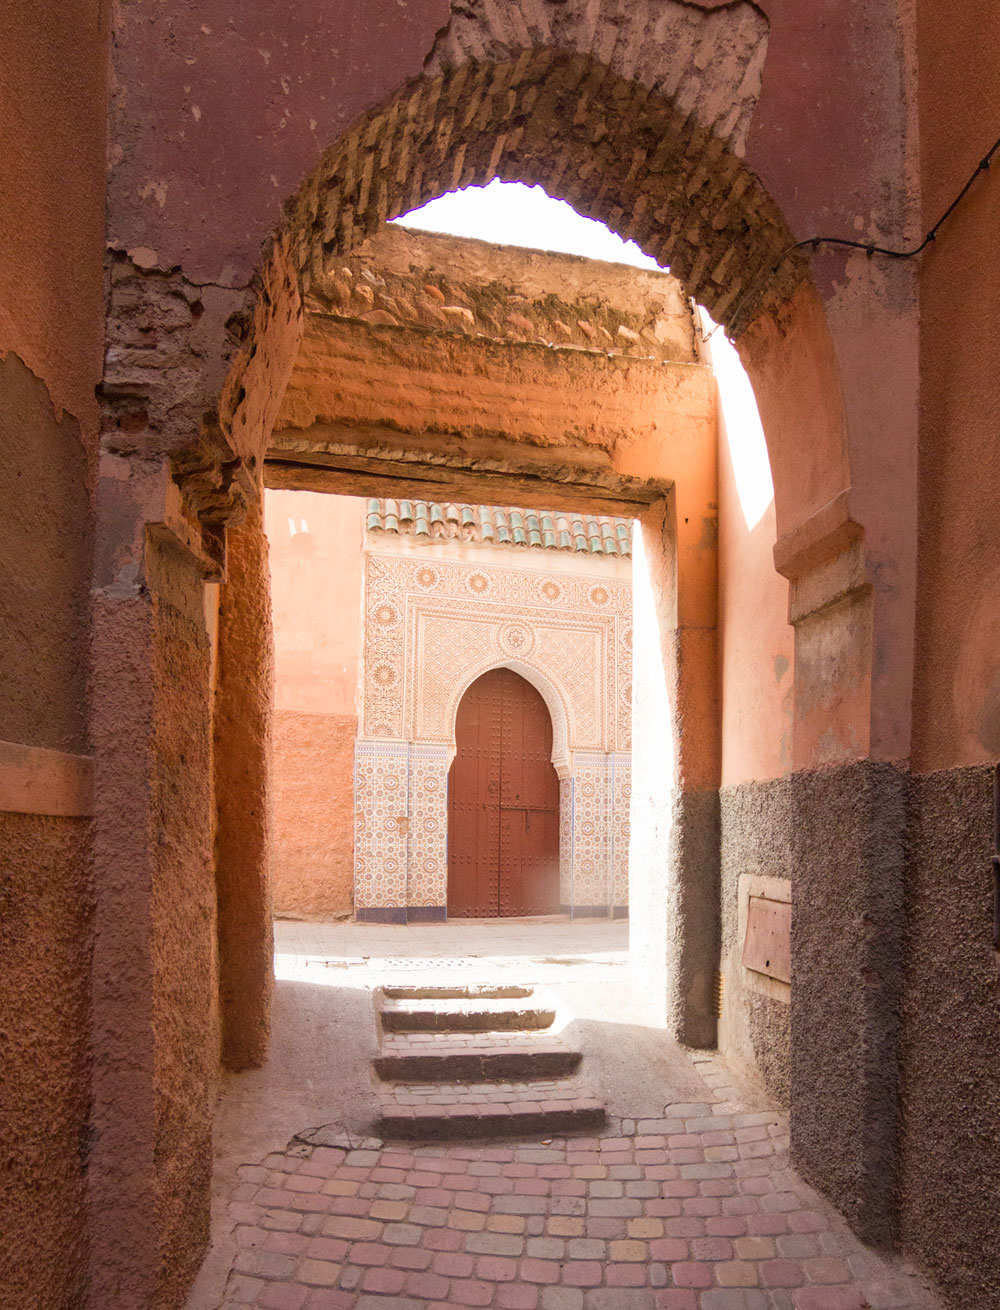 Morrocco-Marrakesh-Alleyway-travel